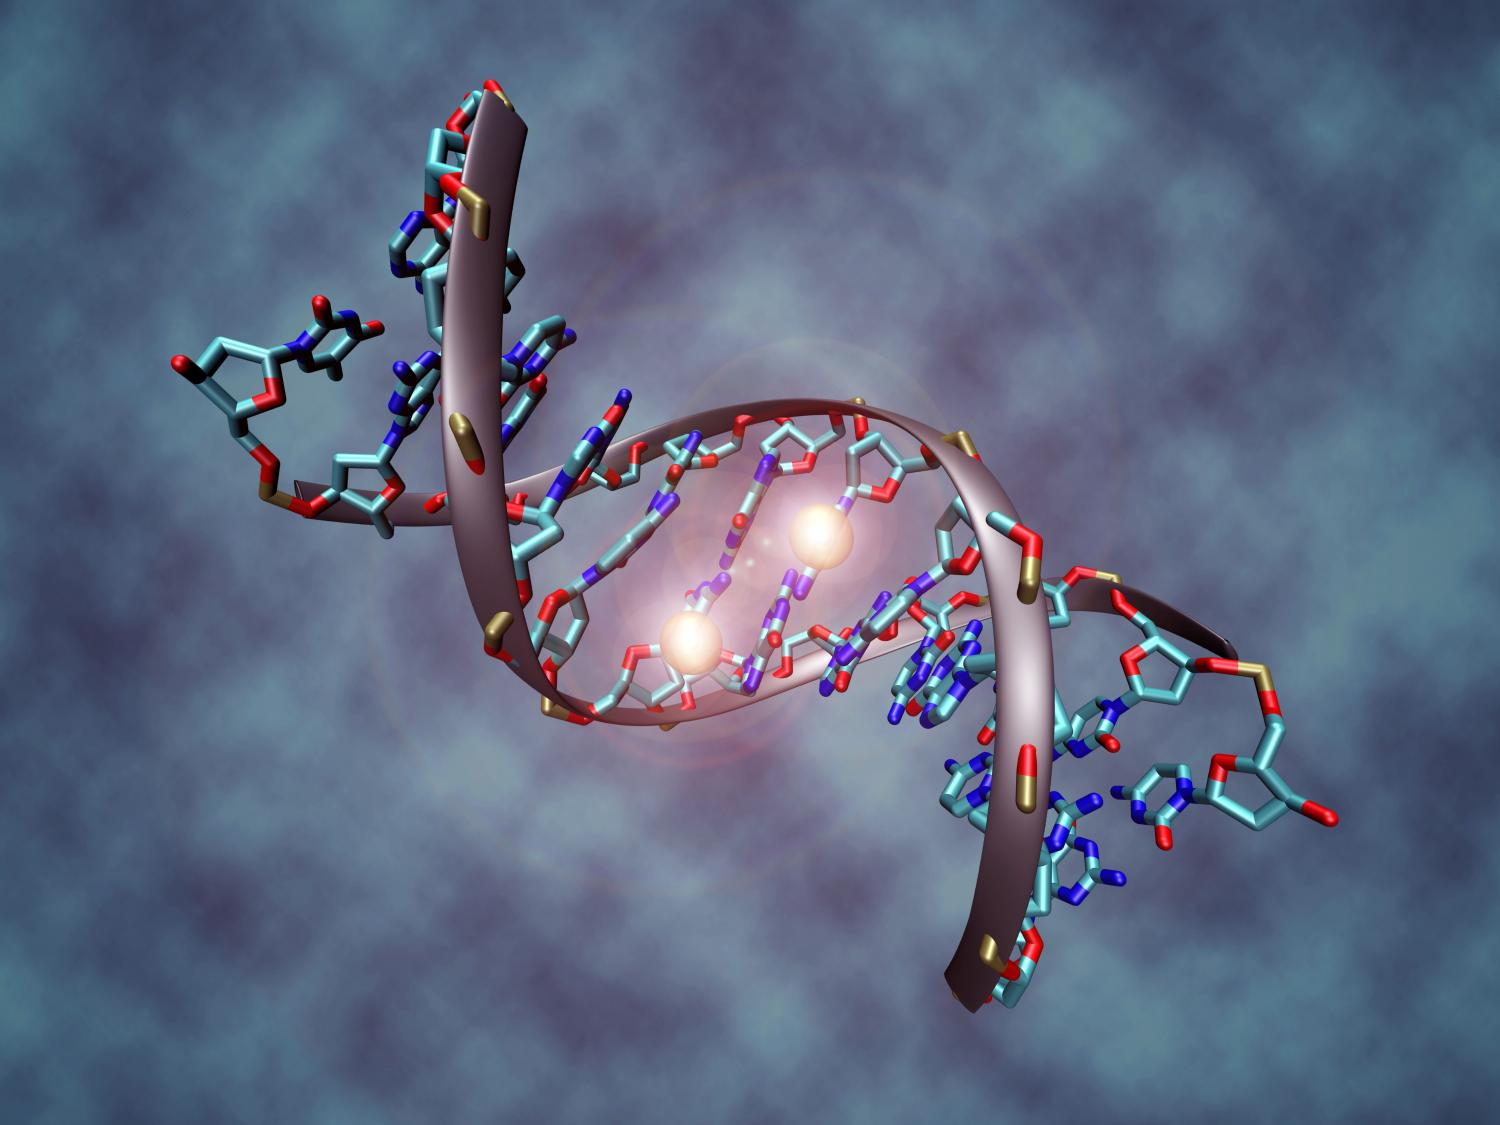 Beyond the dna comprehensive map of the human epigenome completed a methylated dna molecule dna methylation plays an important role for epigenetic gene regulation in development and cancer credit christoph bockcemm malvernweather Choice Image